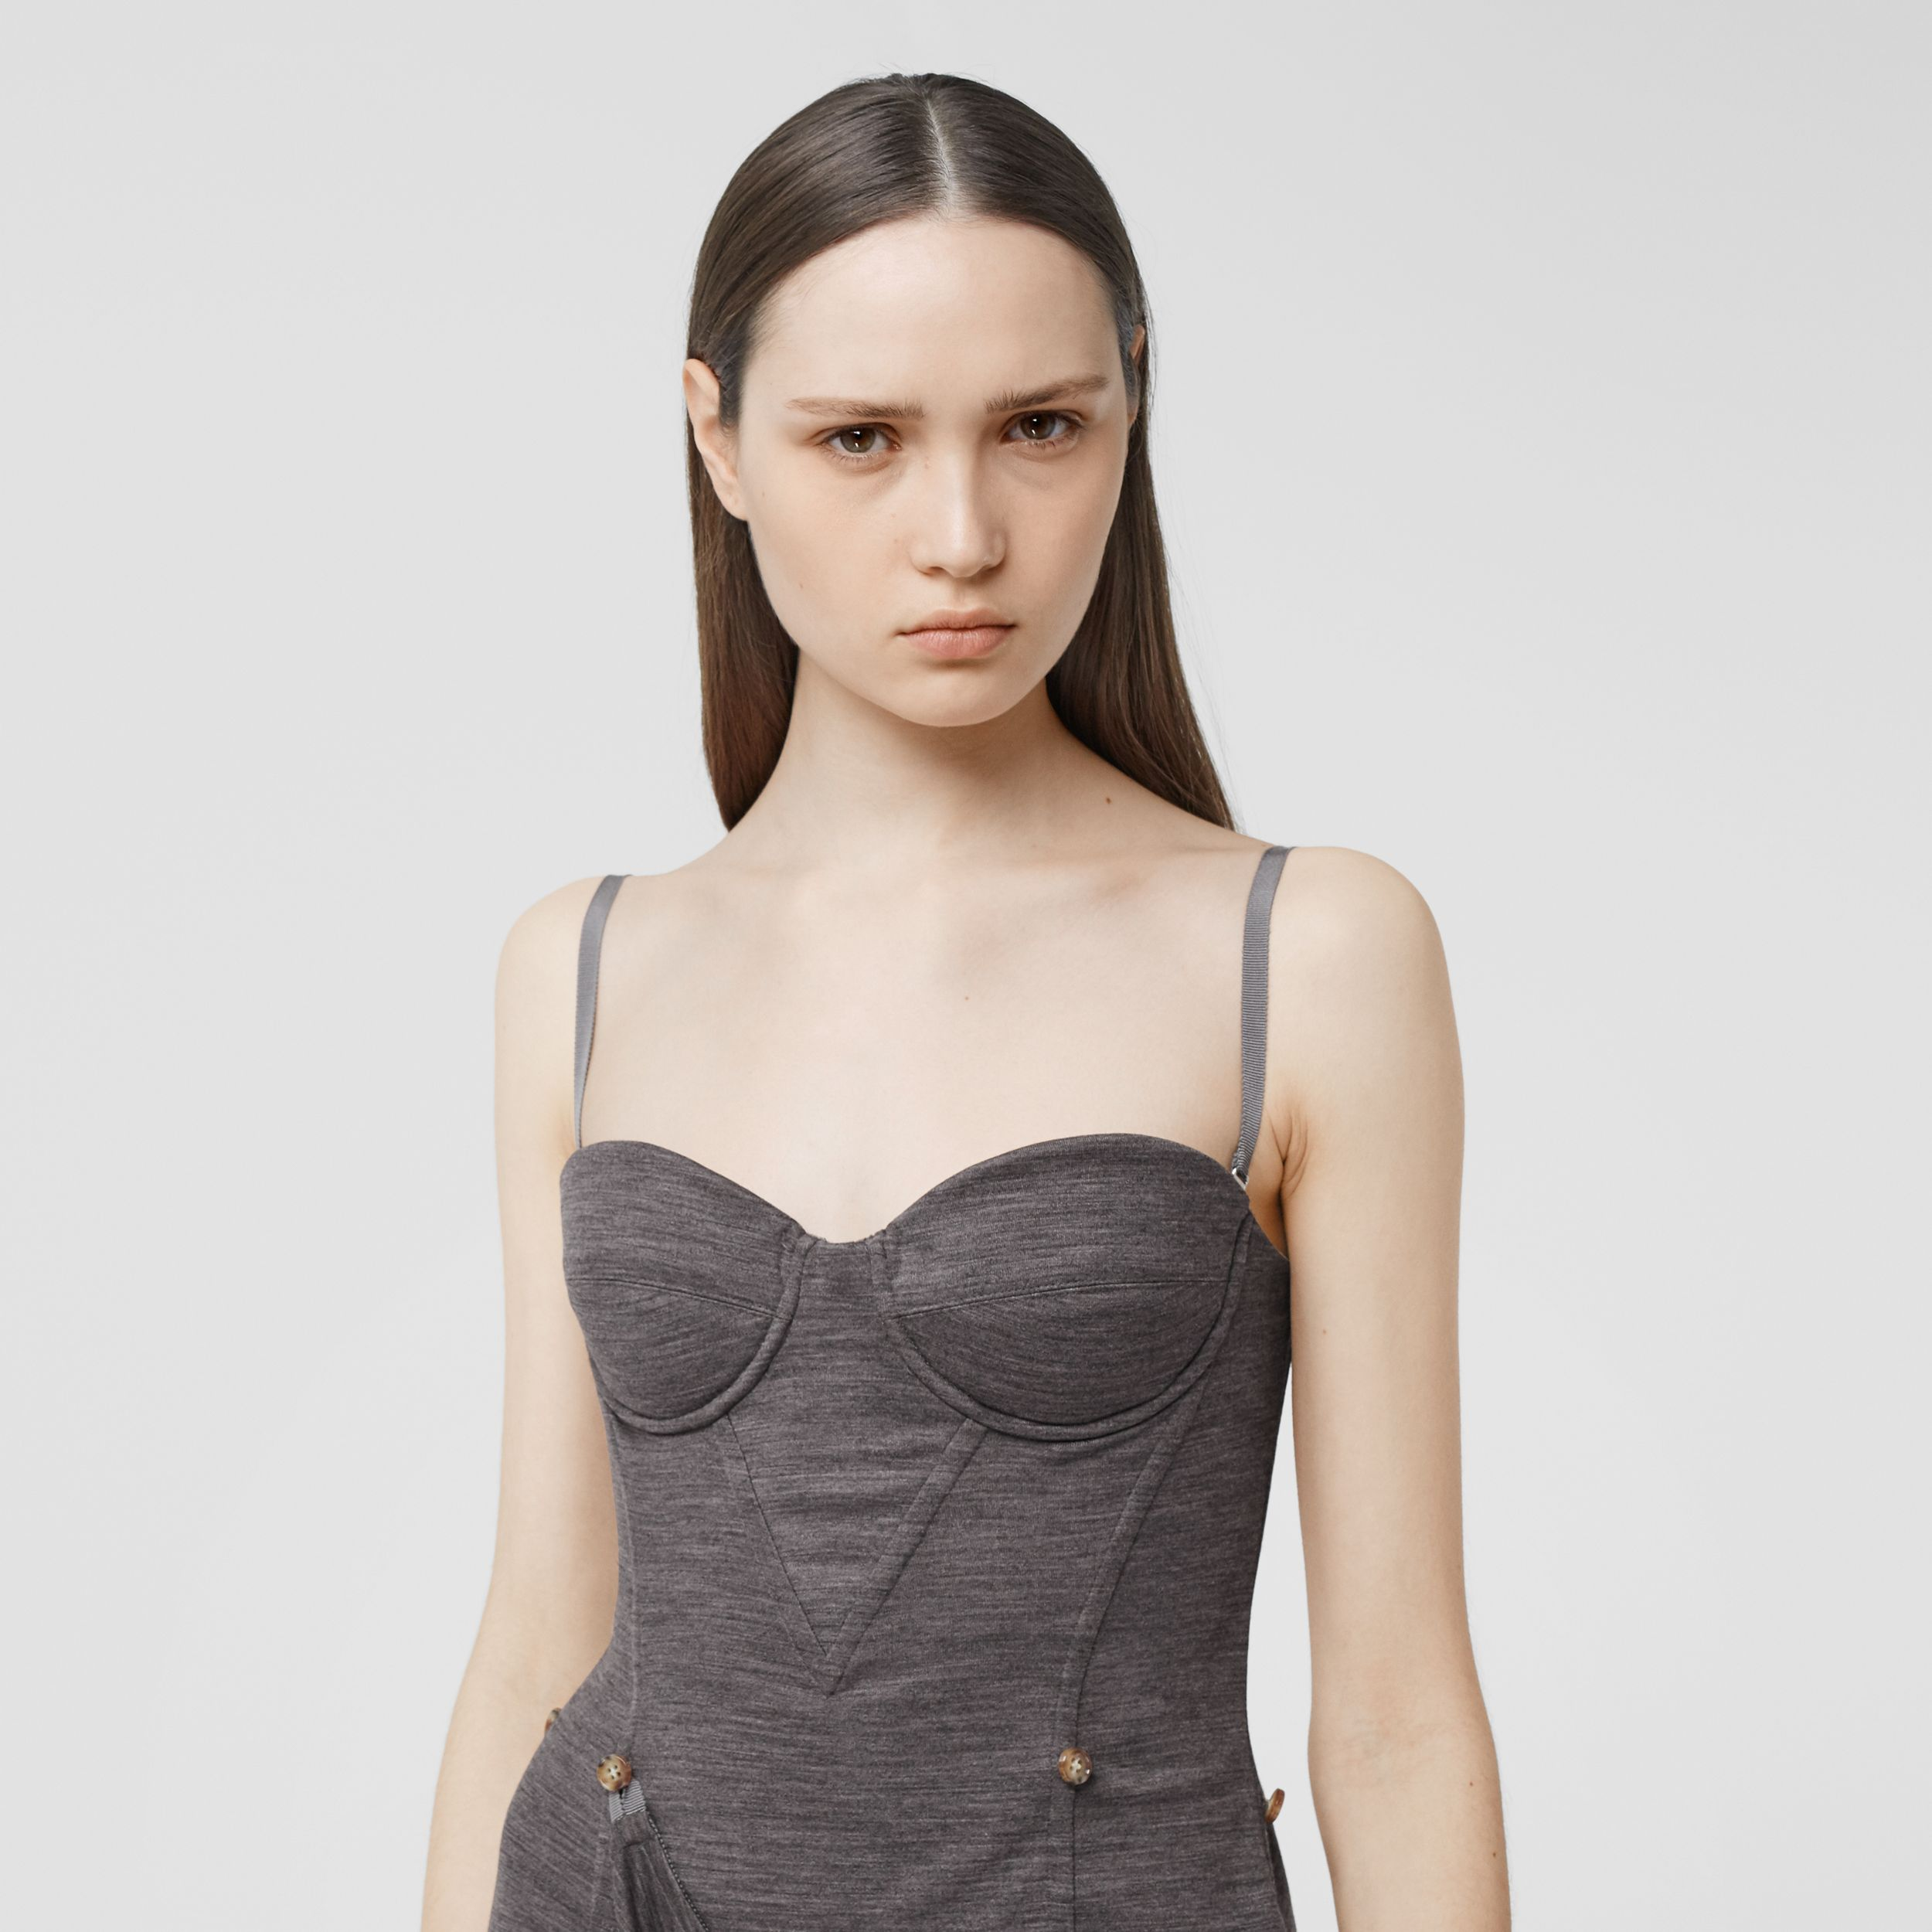 Asymmetric Technical Wool Corset Dress in Charcoal Grey - Women | Burberry - 2